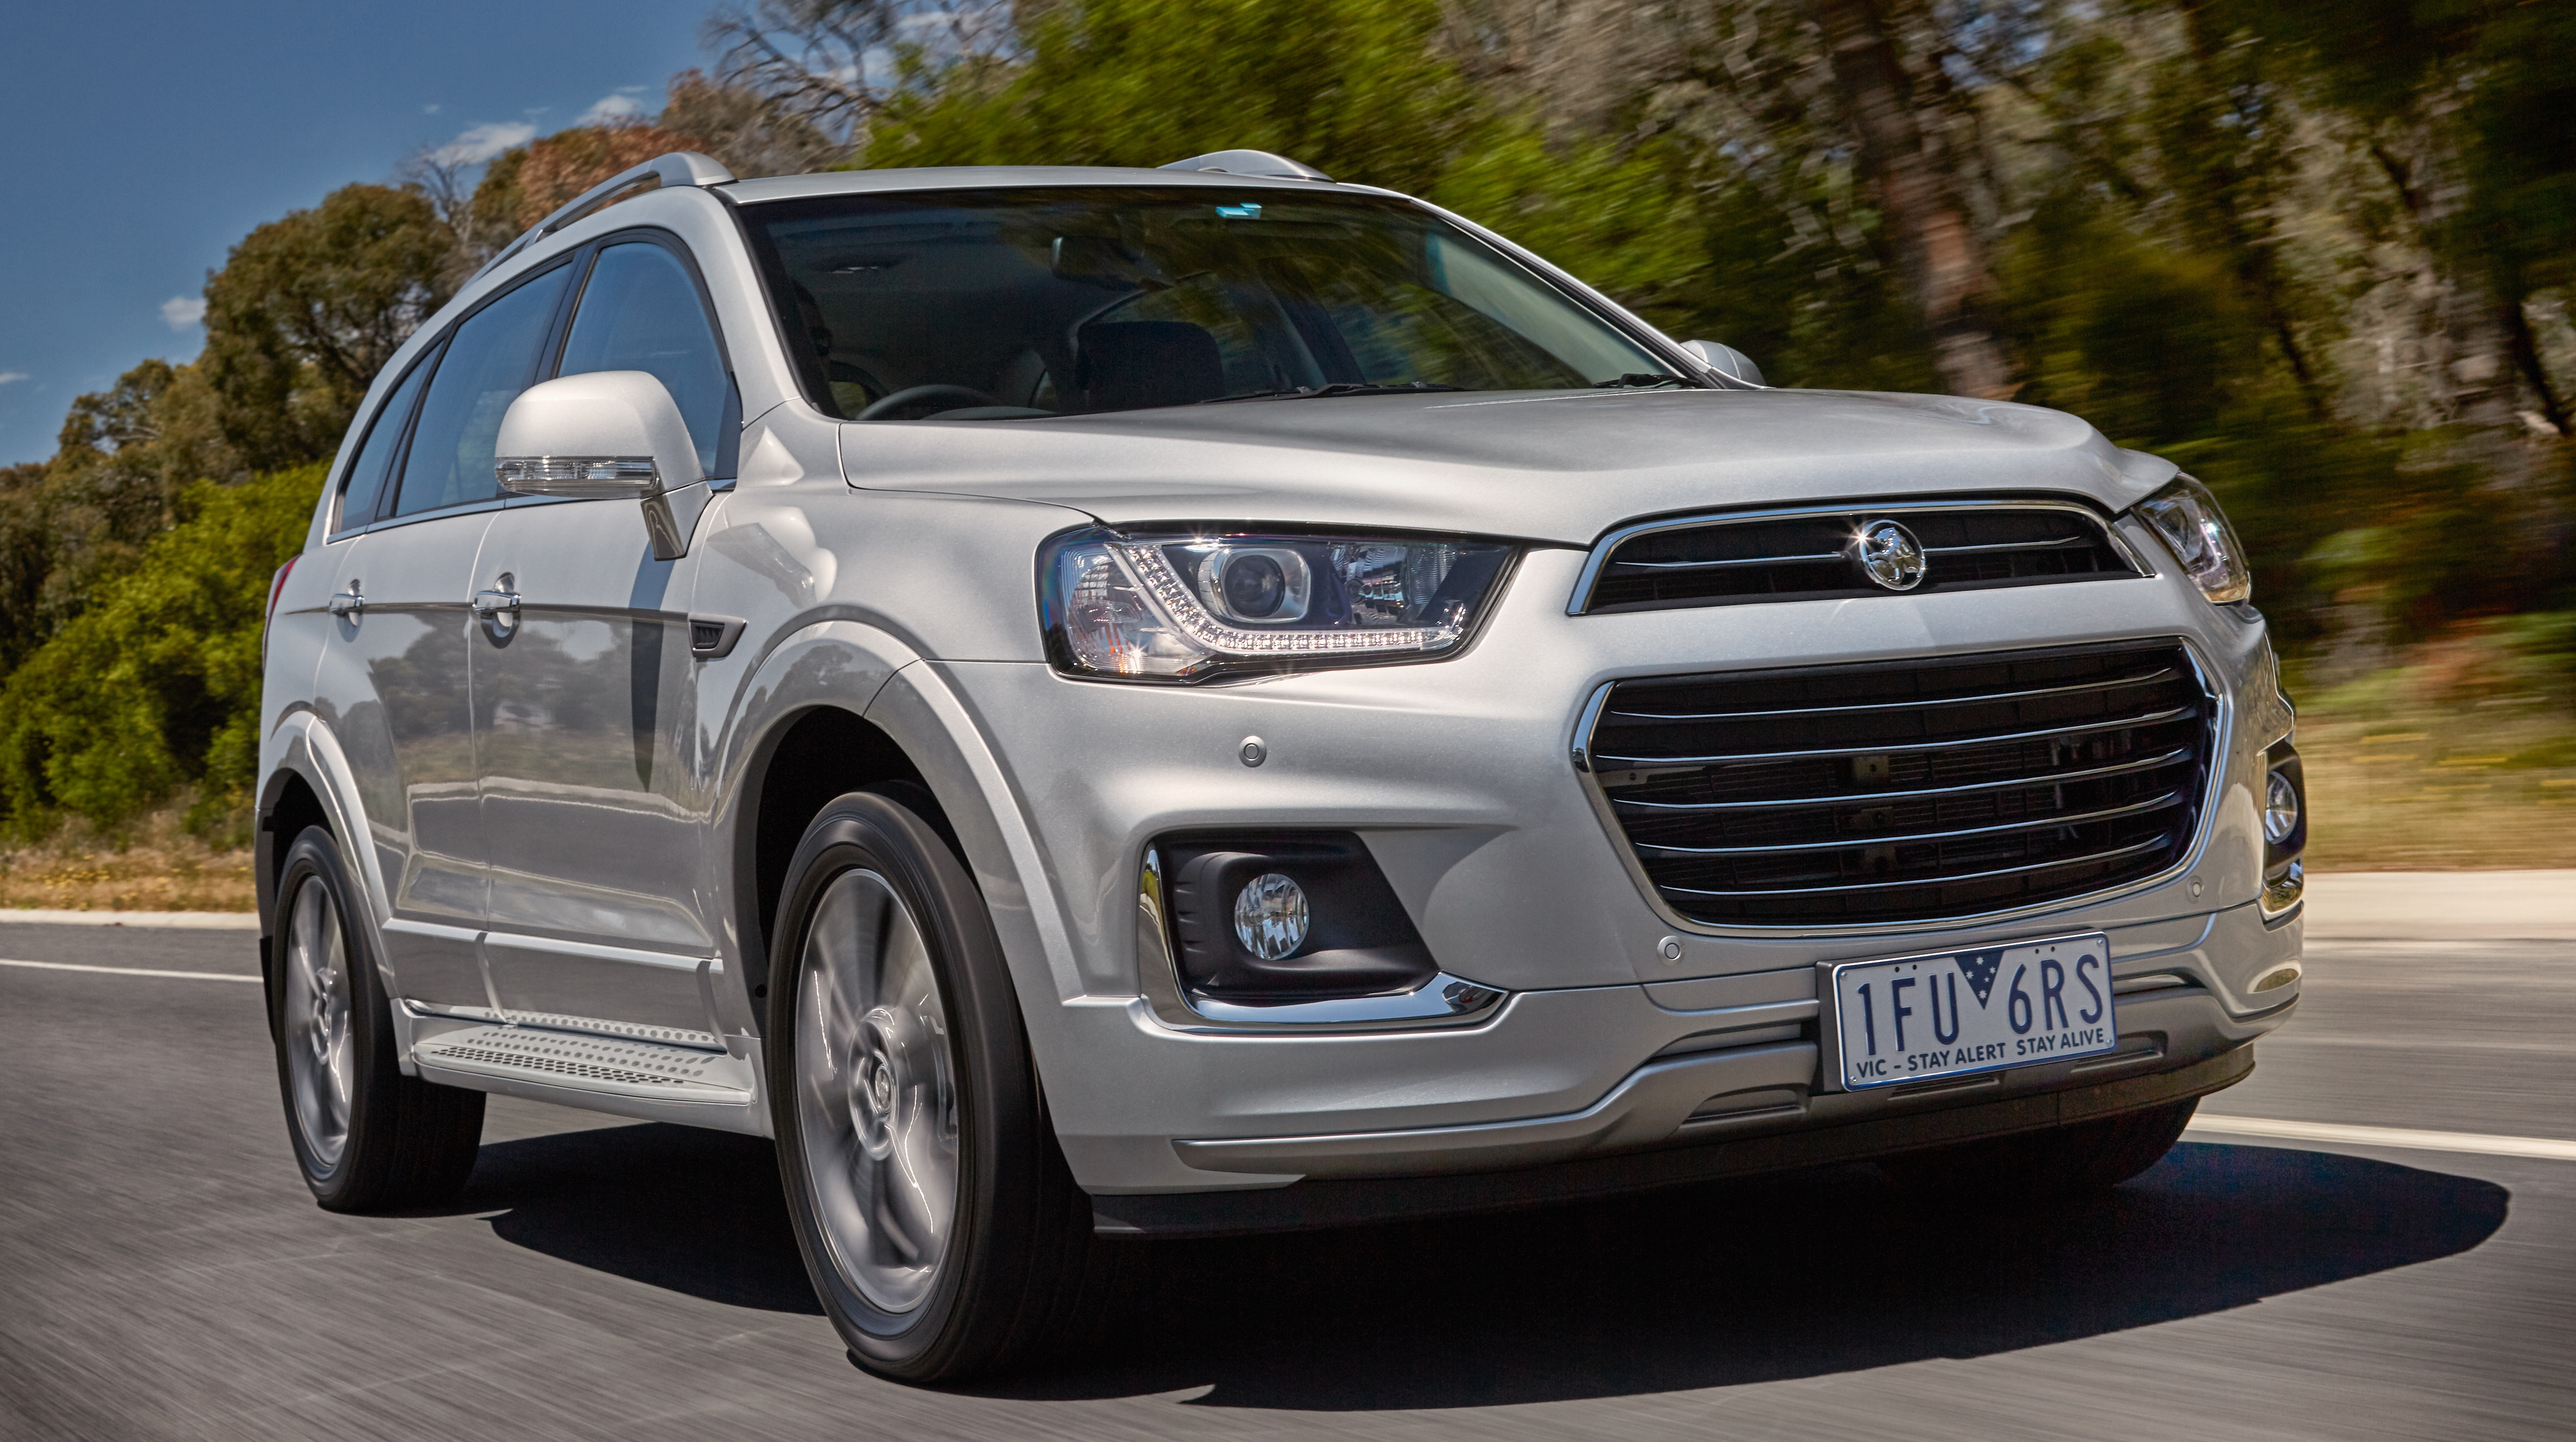 Chevrolet Captiva exterior photo